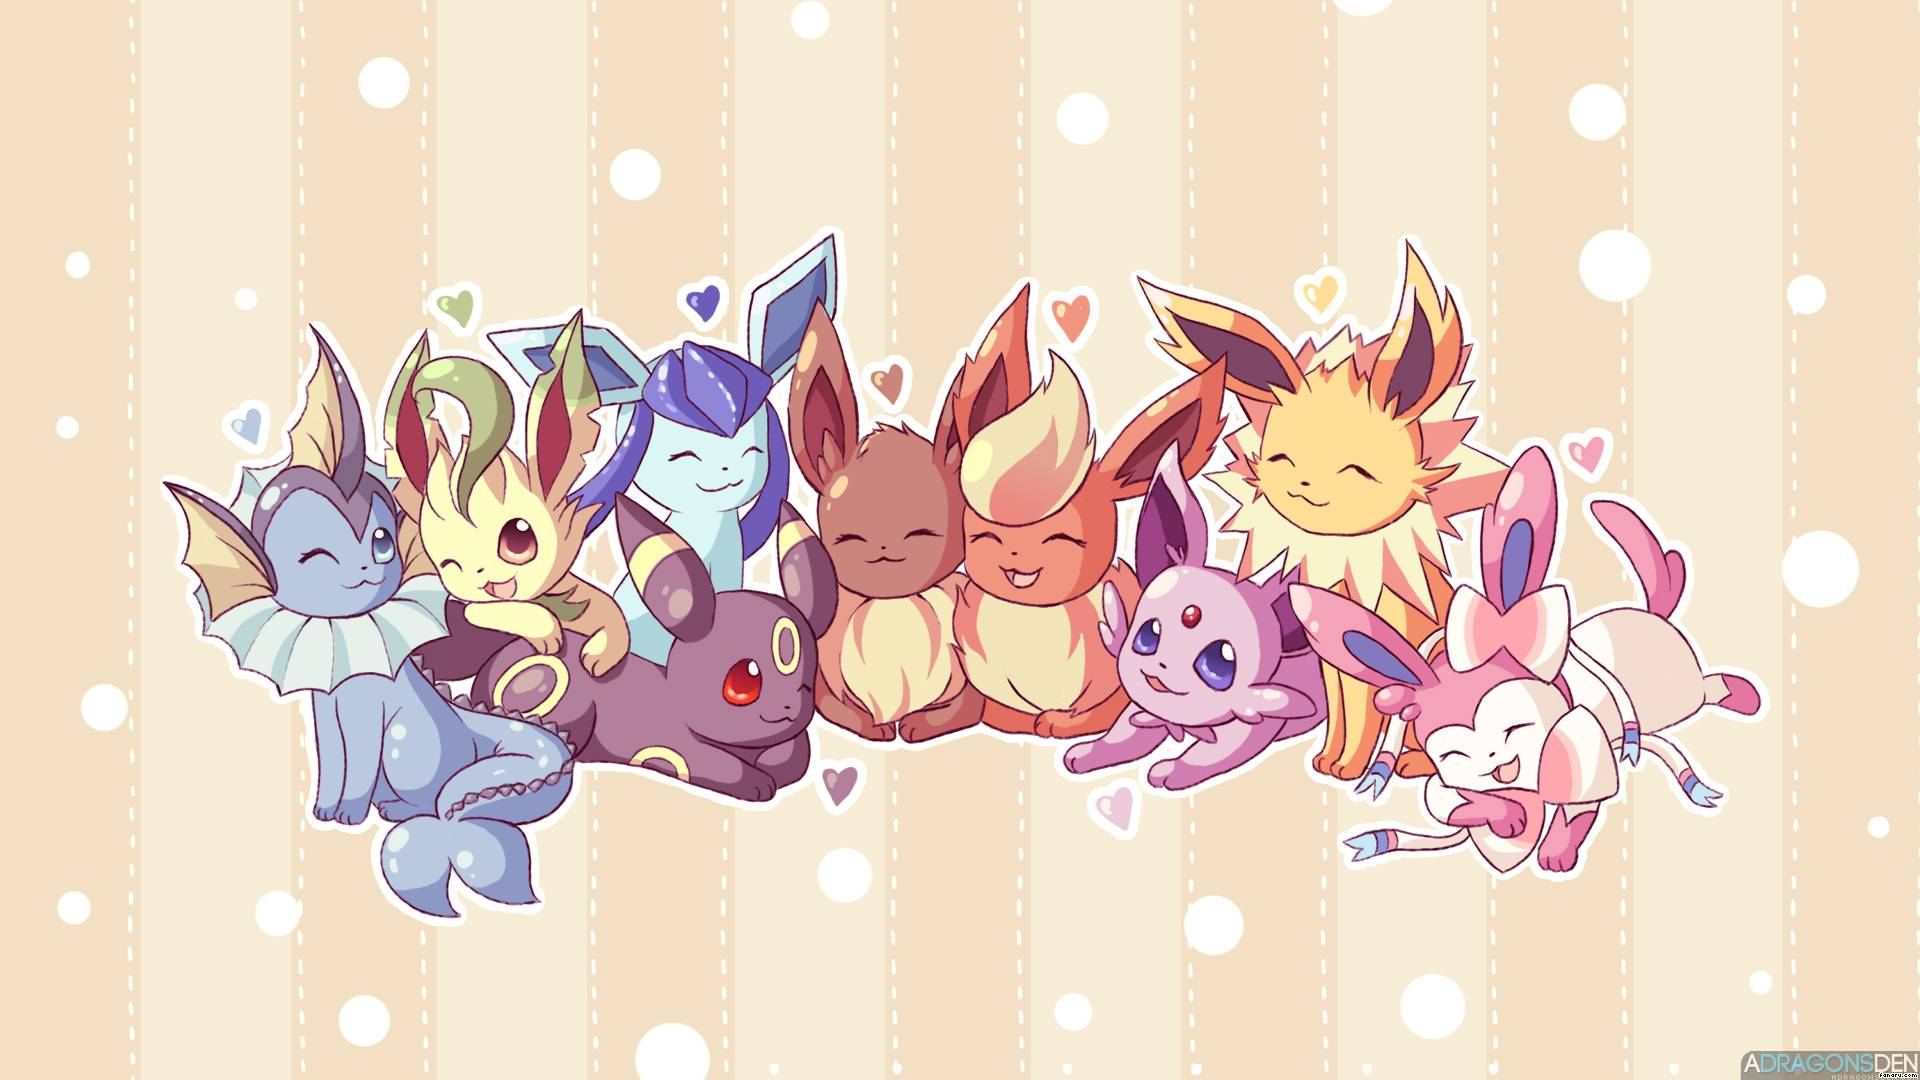 Pokemon Eevee Wallpapers - Wallpaper Cave